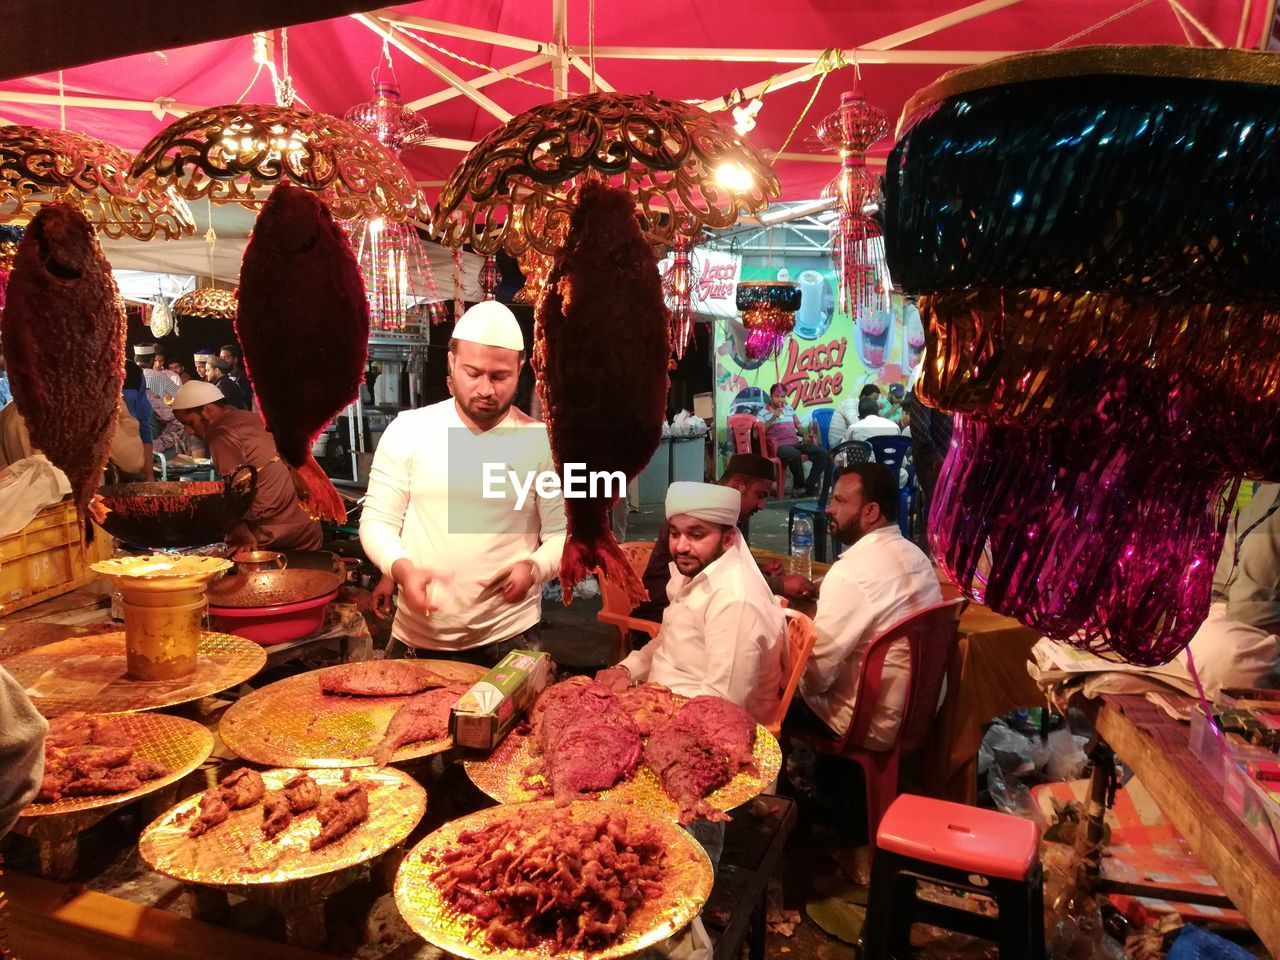 real people, group of people, women, men, adult, retail, market, business, choice, food and drink, people, food, variation, market stall, lifestyles, small business, freshness, illuminated, group, buying, retail display